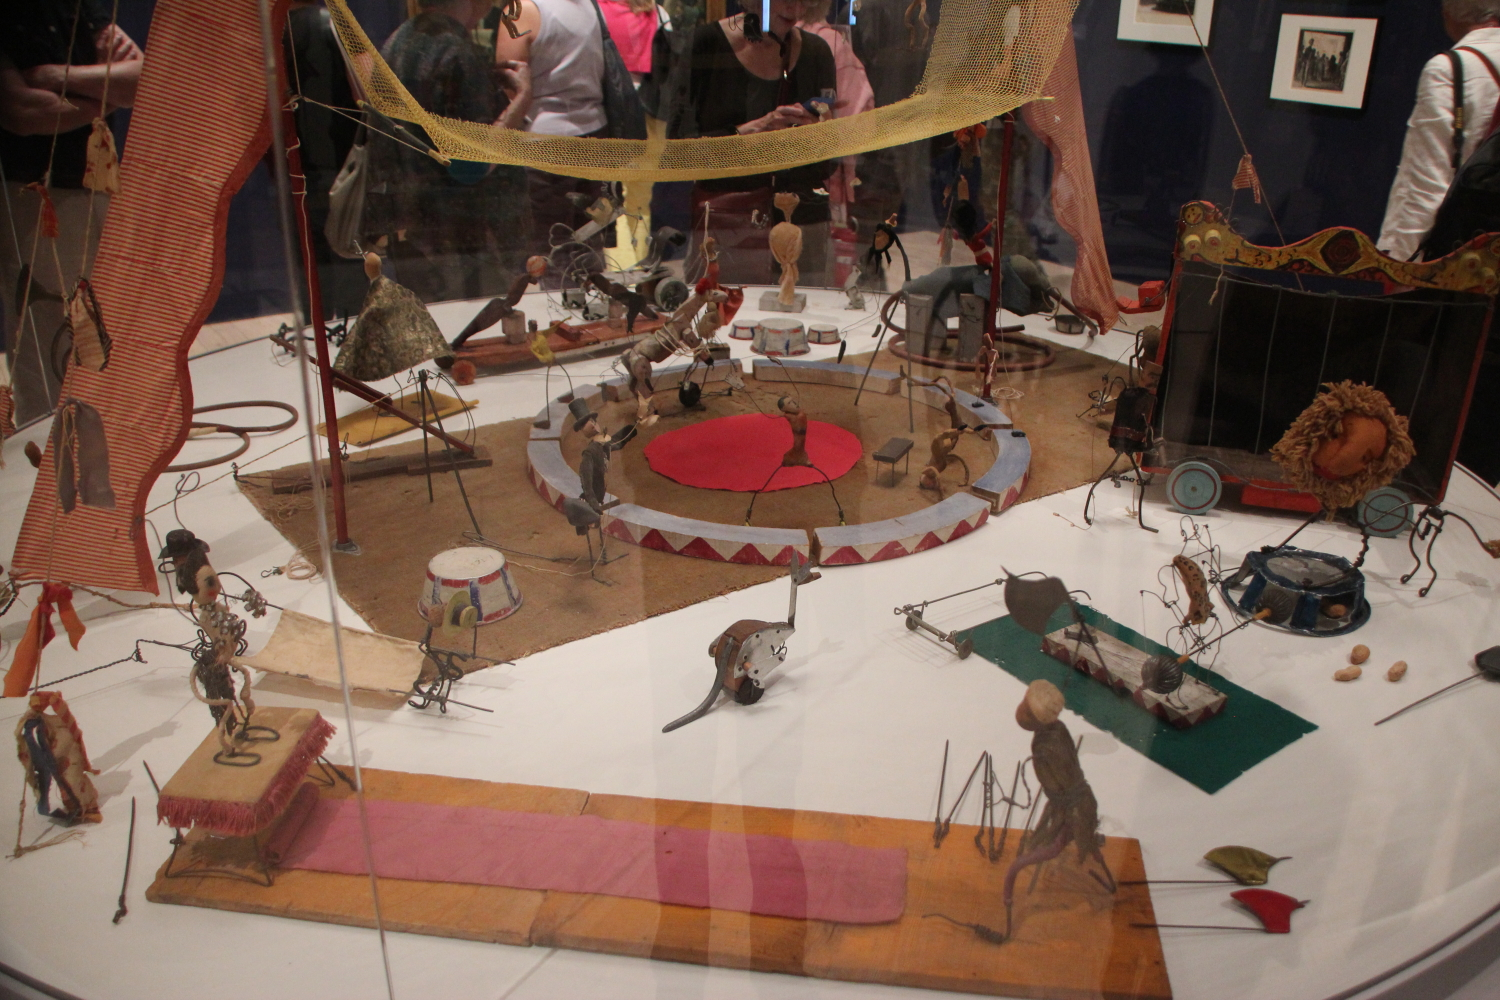 Calder's circus at the new Whitney Museum of American Art